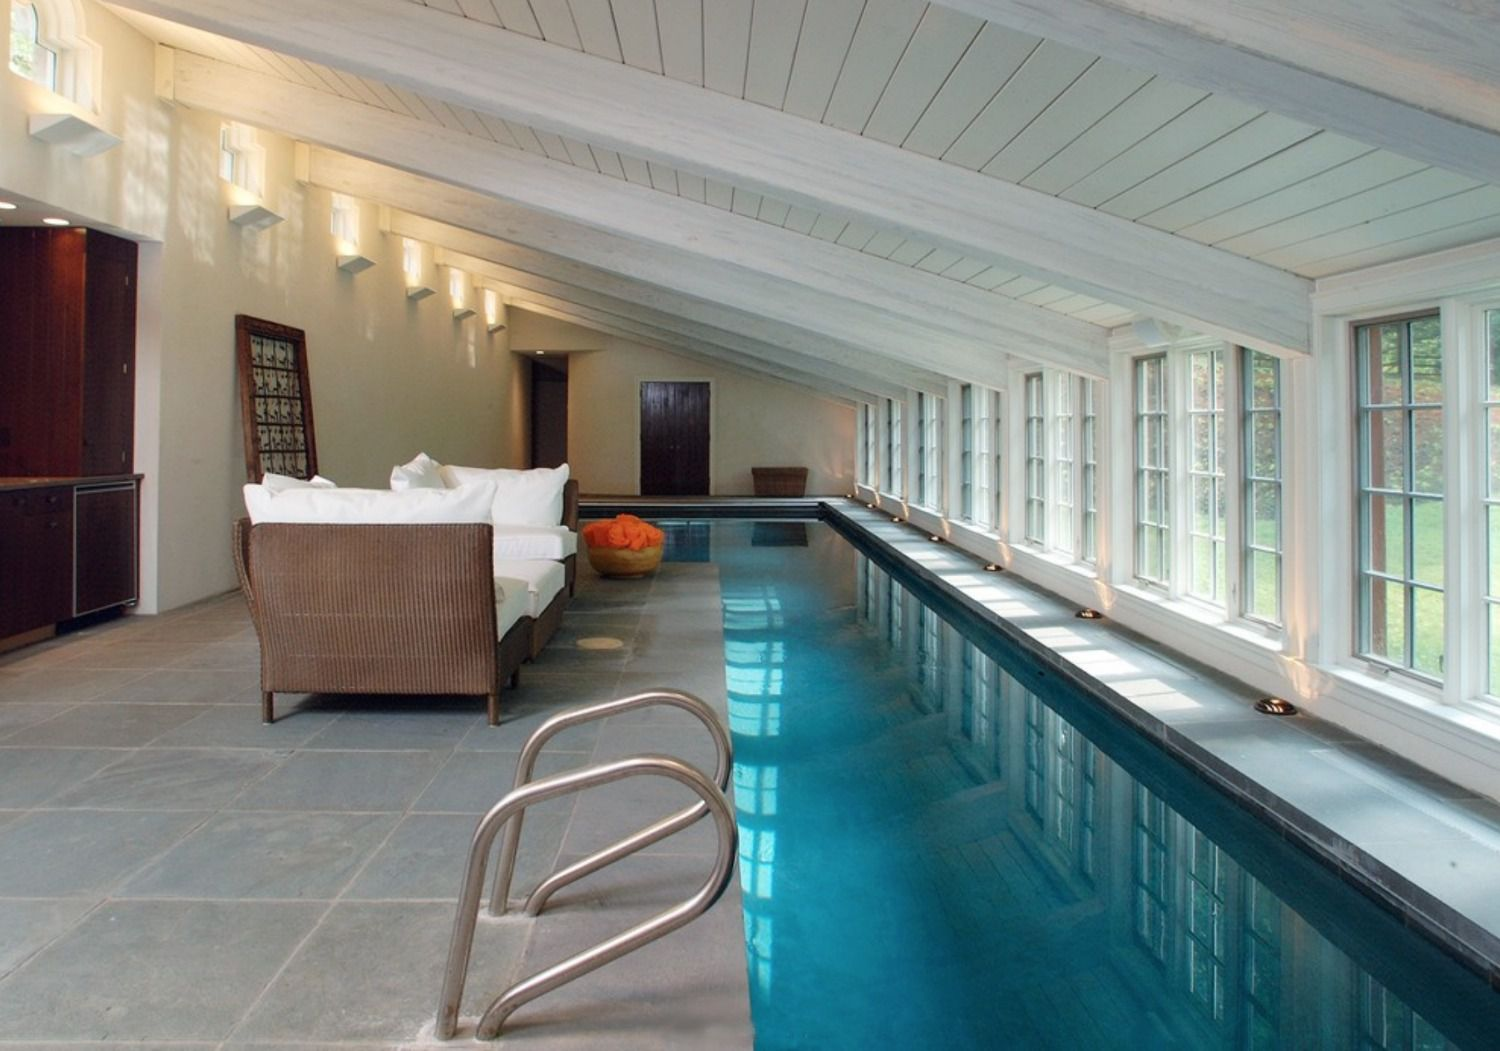 50 Beautiful Swimming Pool Designs - House-with-swimming-pool-design